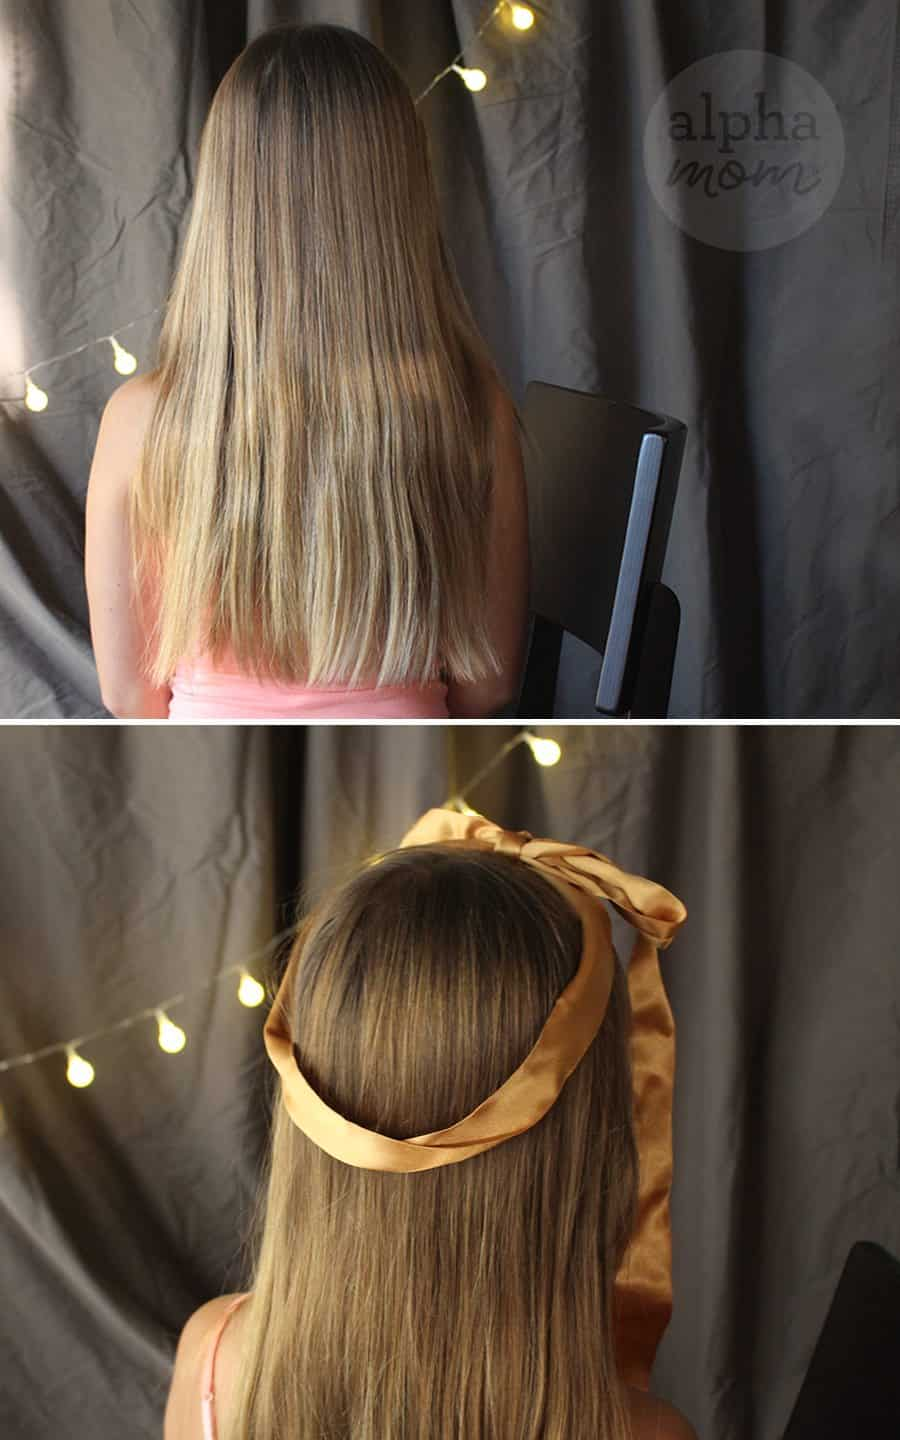 Five-Minute Kids' Holiday Fancy Up-Do Hair (Steps 1 & 2) by Brenda Ponnay for Alphamom.com